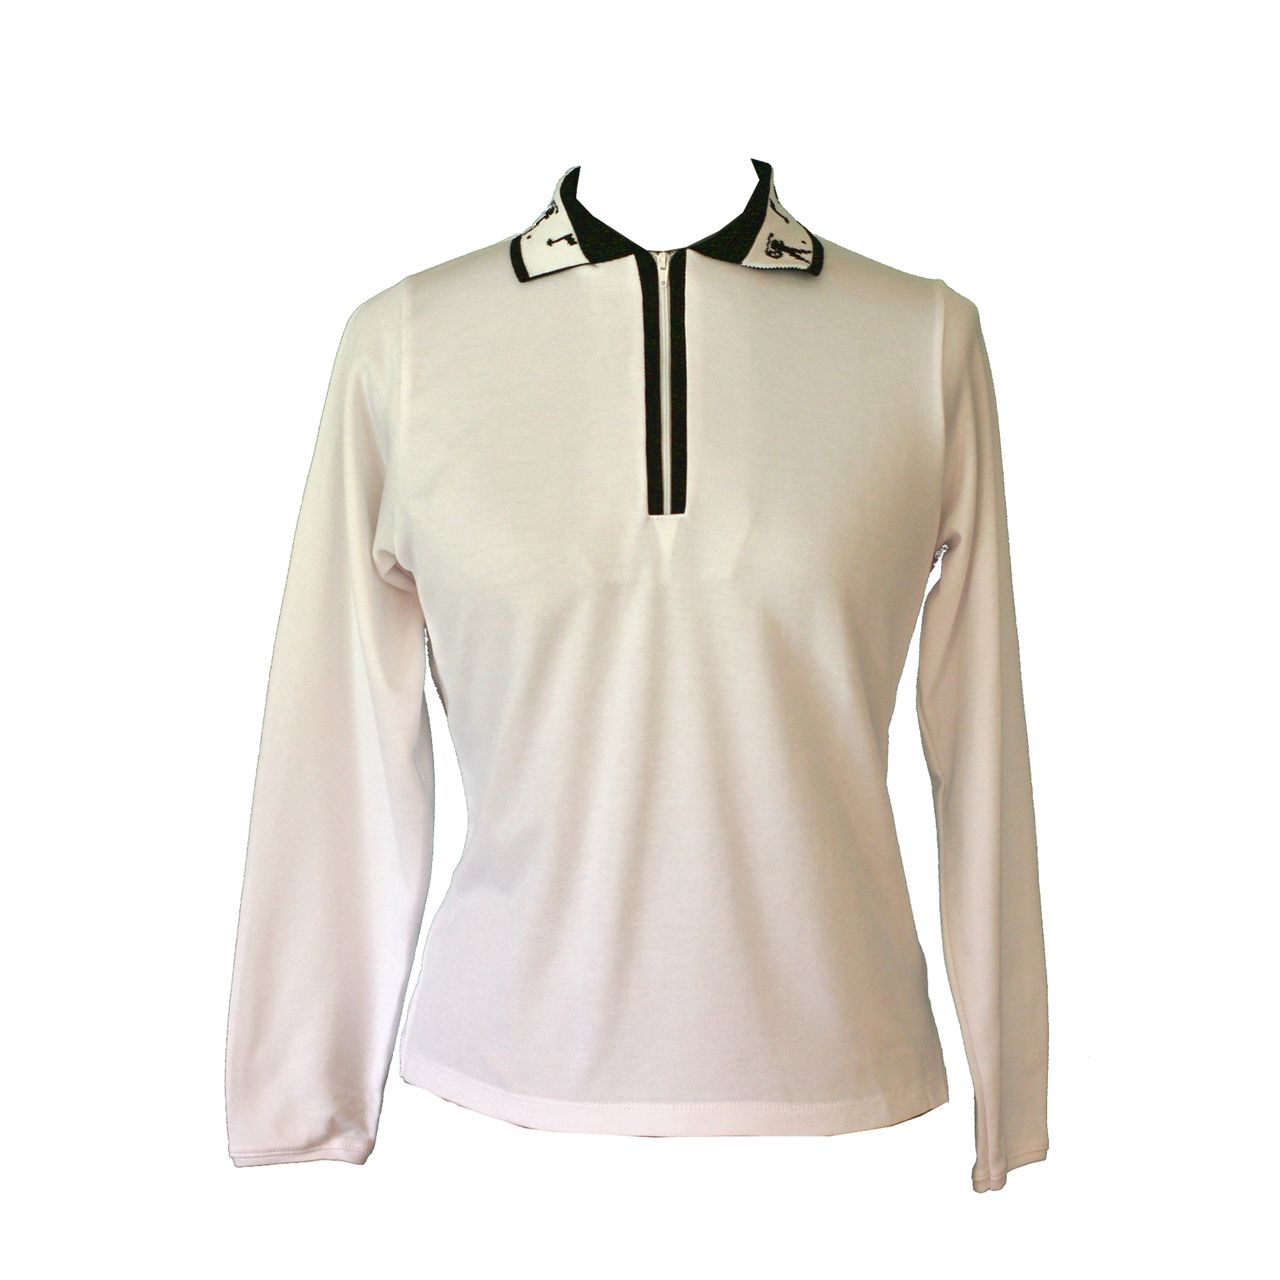 White long sleeves, a staple for every lady golfers wardrobe. Lady Golfwear - Long Sleeves Golf Shirts, $49.00 (http://www.ladygolfwear.com.au/long-sleeves-golf-shirts/)